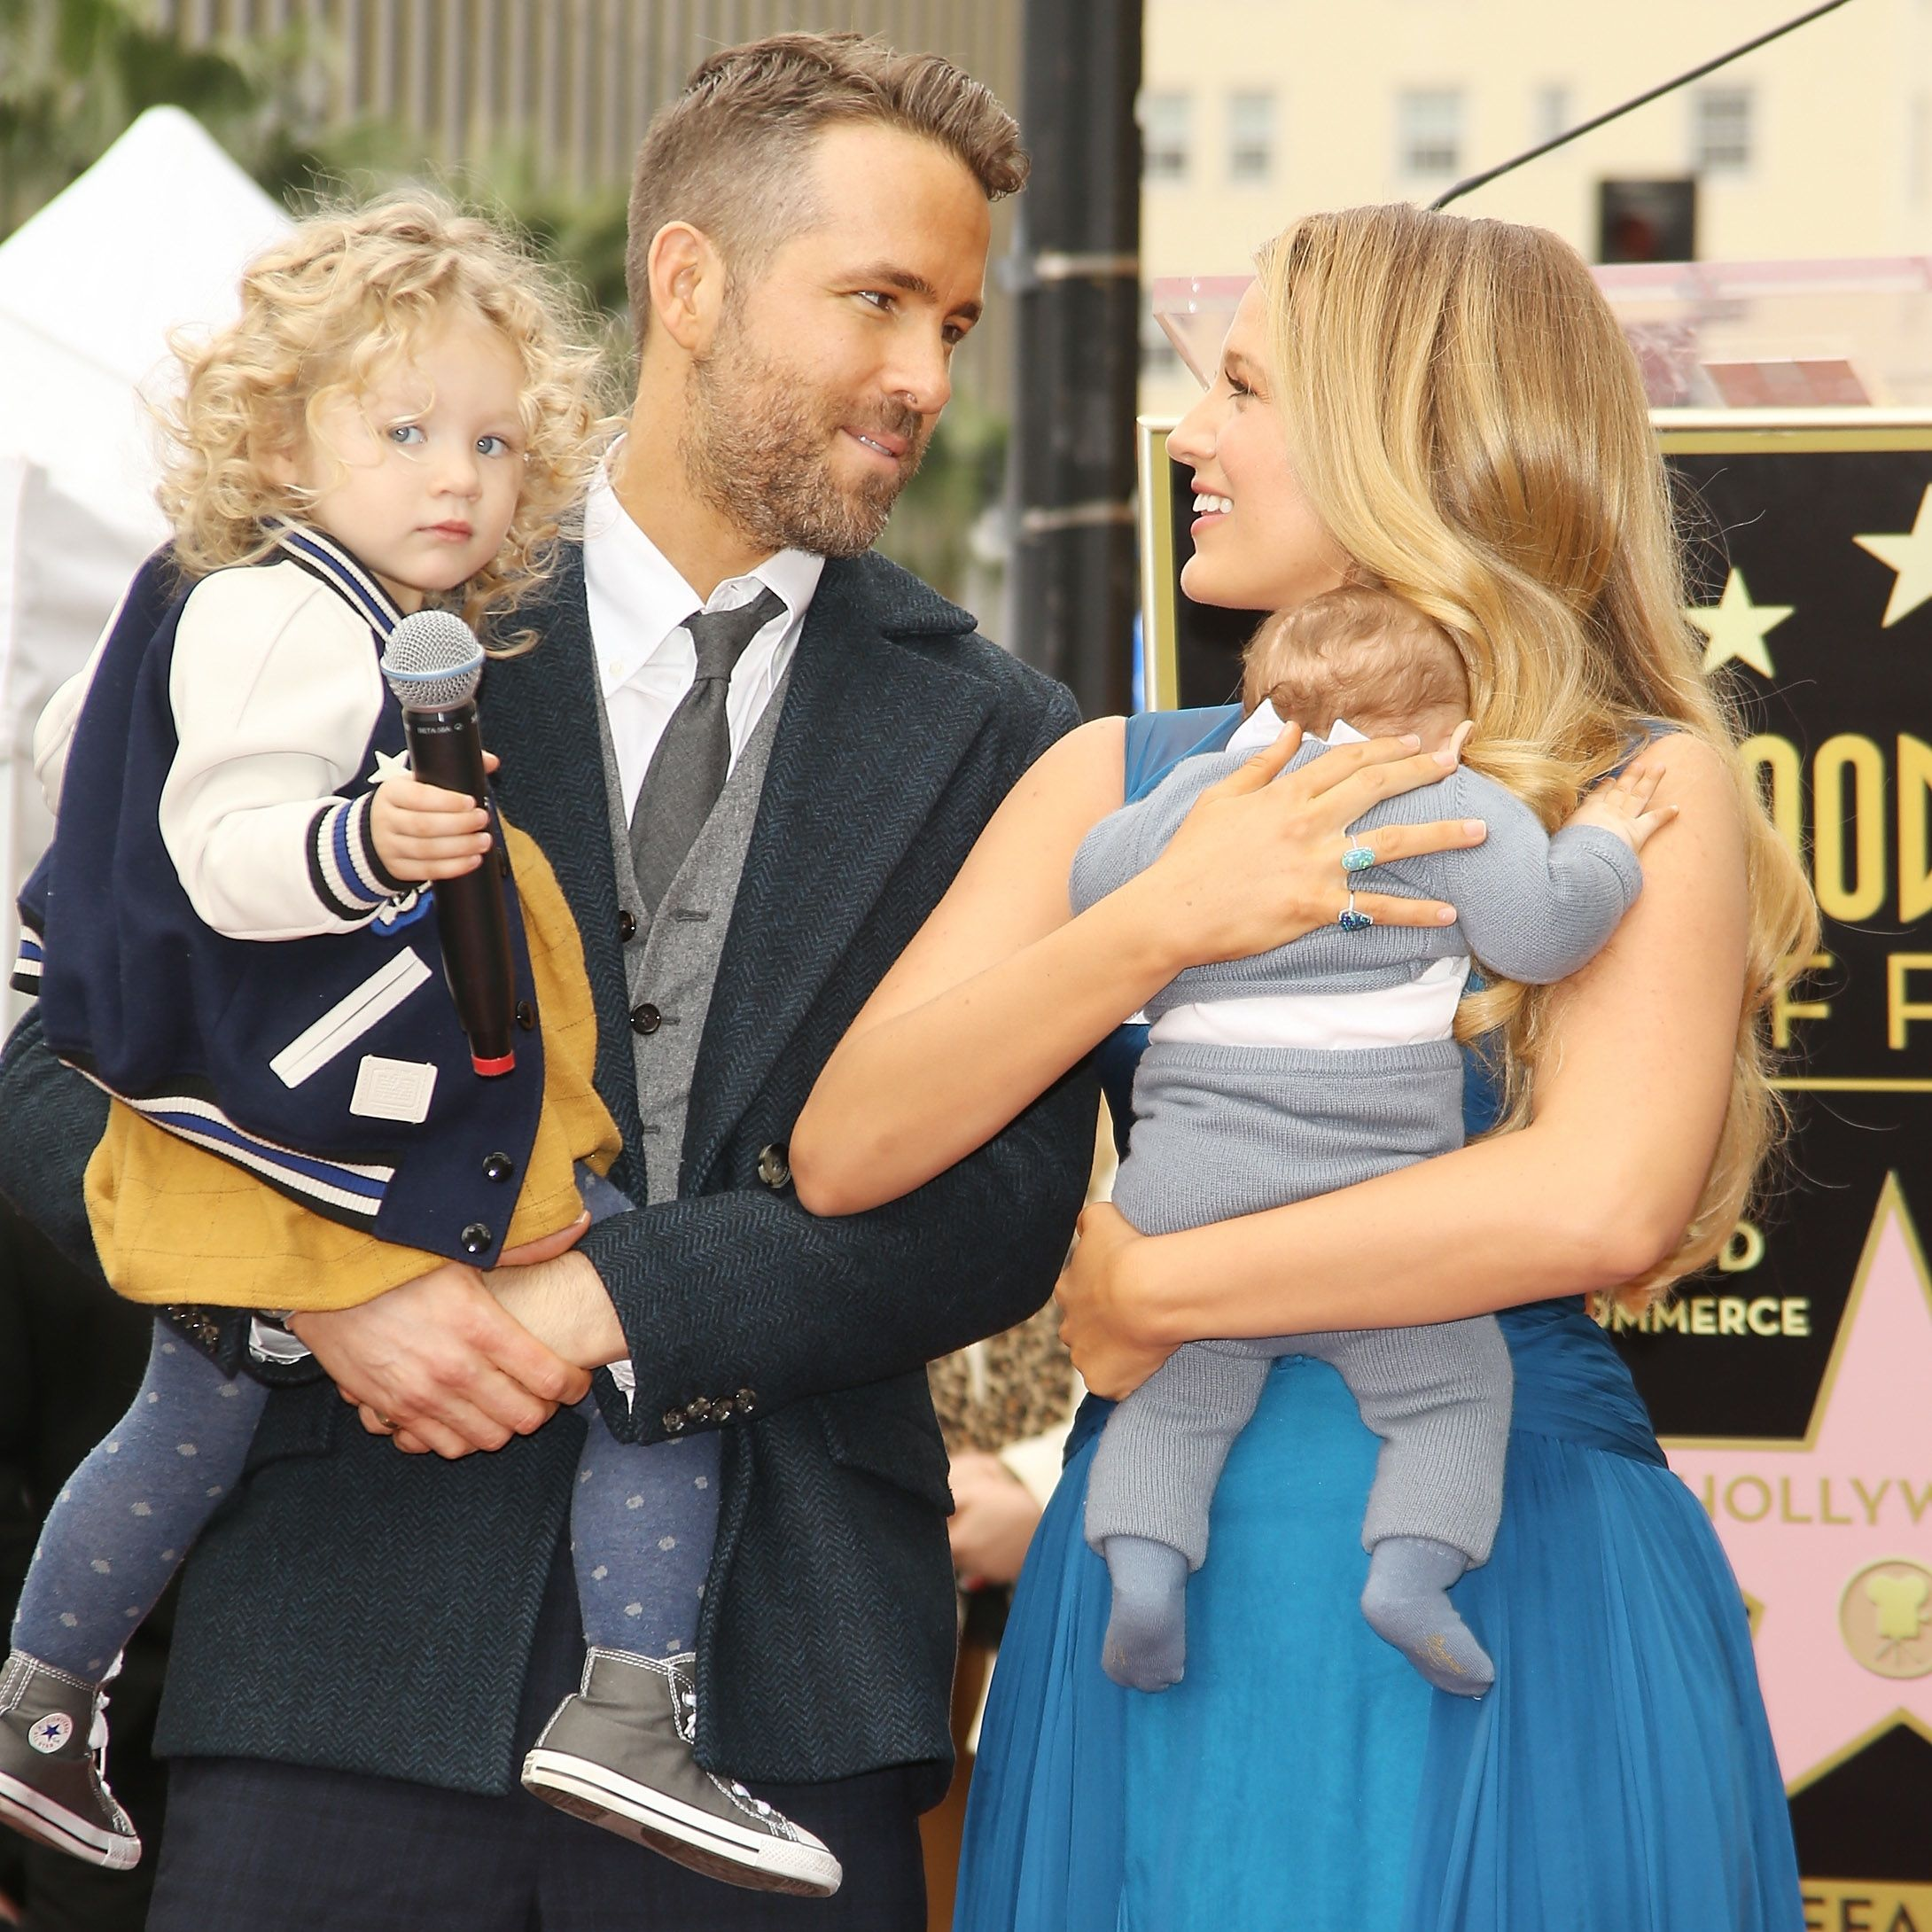 """<p>Tons of popular celebritieswere born in August, like <a href=""""http://www.redbookmag.com/life/news/a51489/ryan-reynolds-says-he-is-unfit-to-cook-for-wife/"""" target=""""_blank"""" data-tracking-id=""""recirc-text-link"""">Blake Lively</a>, <a href=""""http://www.redbookmag.com/life/a21342/anna-kendrick-boss-pitch-perfect-meme-instagram/"""" target=""""_blank"""" data-tracking-id=""""recirc-text-link"""">Anna Kendrick</a>,<a href=""""http://www.redbookmag.com/love-sex/relationships/a50904/ashton-kutcher-mila-kunis-first-kiss-that-70s-show-off-screen/"""" target=""""_blank"""" data-tracking-id=""""recirc-text-link"""">Mila Kunis</a>, <a href=""""http://www.redbookmag.com/life/friends-family/a50131/kylie-jenner-bored-by-ryan-reynolds-met-gala-photos/"""" target=""""_blank"""" data-tracking-id=""""recirc-text-link"""">Kylie Jenner</a>, <a href=""""http://www.redbookmag.com/body/a42923/jennifer-lawrence-trainer-dalton-wong/"""" target=""""_blank"""" data-tracking-id=""""recirc-text-link"""">Jennifer Lawrence</a>, and <a href=""""http://www.redbookmag.com/life/a44794/demi-lovato-mariah-carey-nasty-jennifer-lopez-feud/"""" target=""""_blank"""" data-tracking-id=""""recirc-text-link"""">Demi Lovato</a>,just to name a few. August-born peoplealso share a birth month with threeformer presidents:<a href=""""http://www.redbookmag.com/love-sex/relationships/a50193/barack-obama-michelle-obama-profile-in-courage-award-speech/"""" target=""""_blank"""" data-tracking-id=""""recirc-text-link"""">Barack Obama</a>,<a href=""""http://www.redbookmag.com/life/a51188/bill-clinton-george-w-bush-conversation-on-leadership/"""" target=""""_blank"""" data-tracking-id=""""recirc-text-link"""">Bill Clinton</a>, and Lyndon B. Johnson.</p><p><strong data-redactor-tag=""""strong"""" data-verified=""""redactor"""">RELATED: </strong><a href=""""http://www.redbookmag.com/food-recipes/advice/g3726/the-best-cupcake-for-your-sign/"""" target=""""_blank"""" data-tracking-id=""""recirc-text-link""""><strong data-redactor-tag=""""strong"""" data-verified=""""redactor"""">The Best Cupcake for Your Sign</strong></a></p>"""